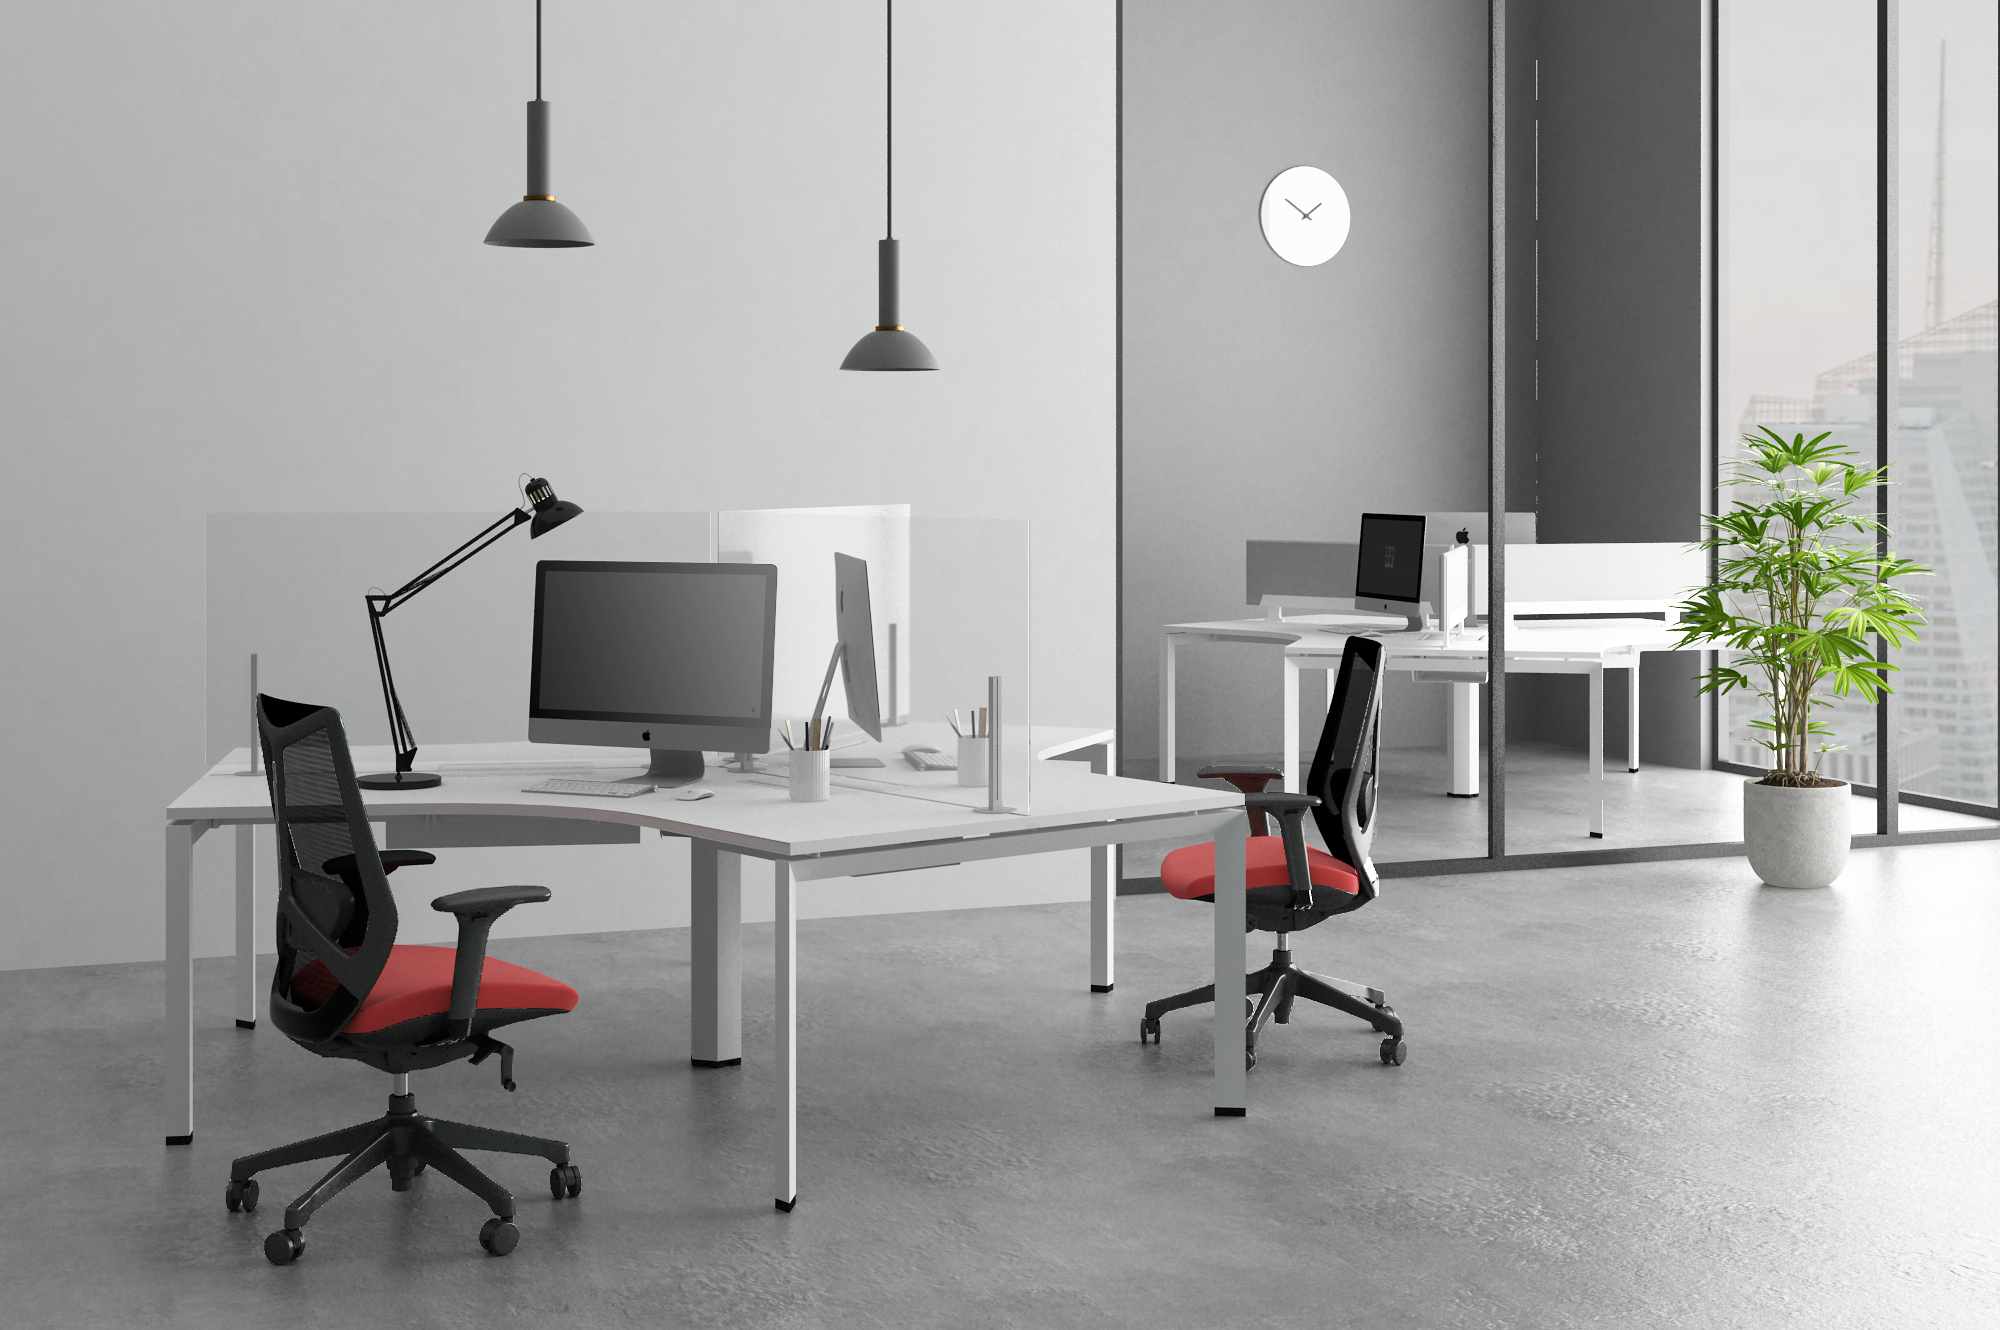 Render of Verity benching workspace with Ignite task seating and shield privacy screens.